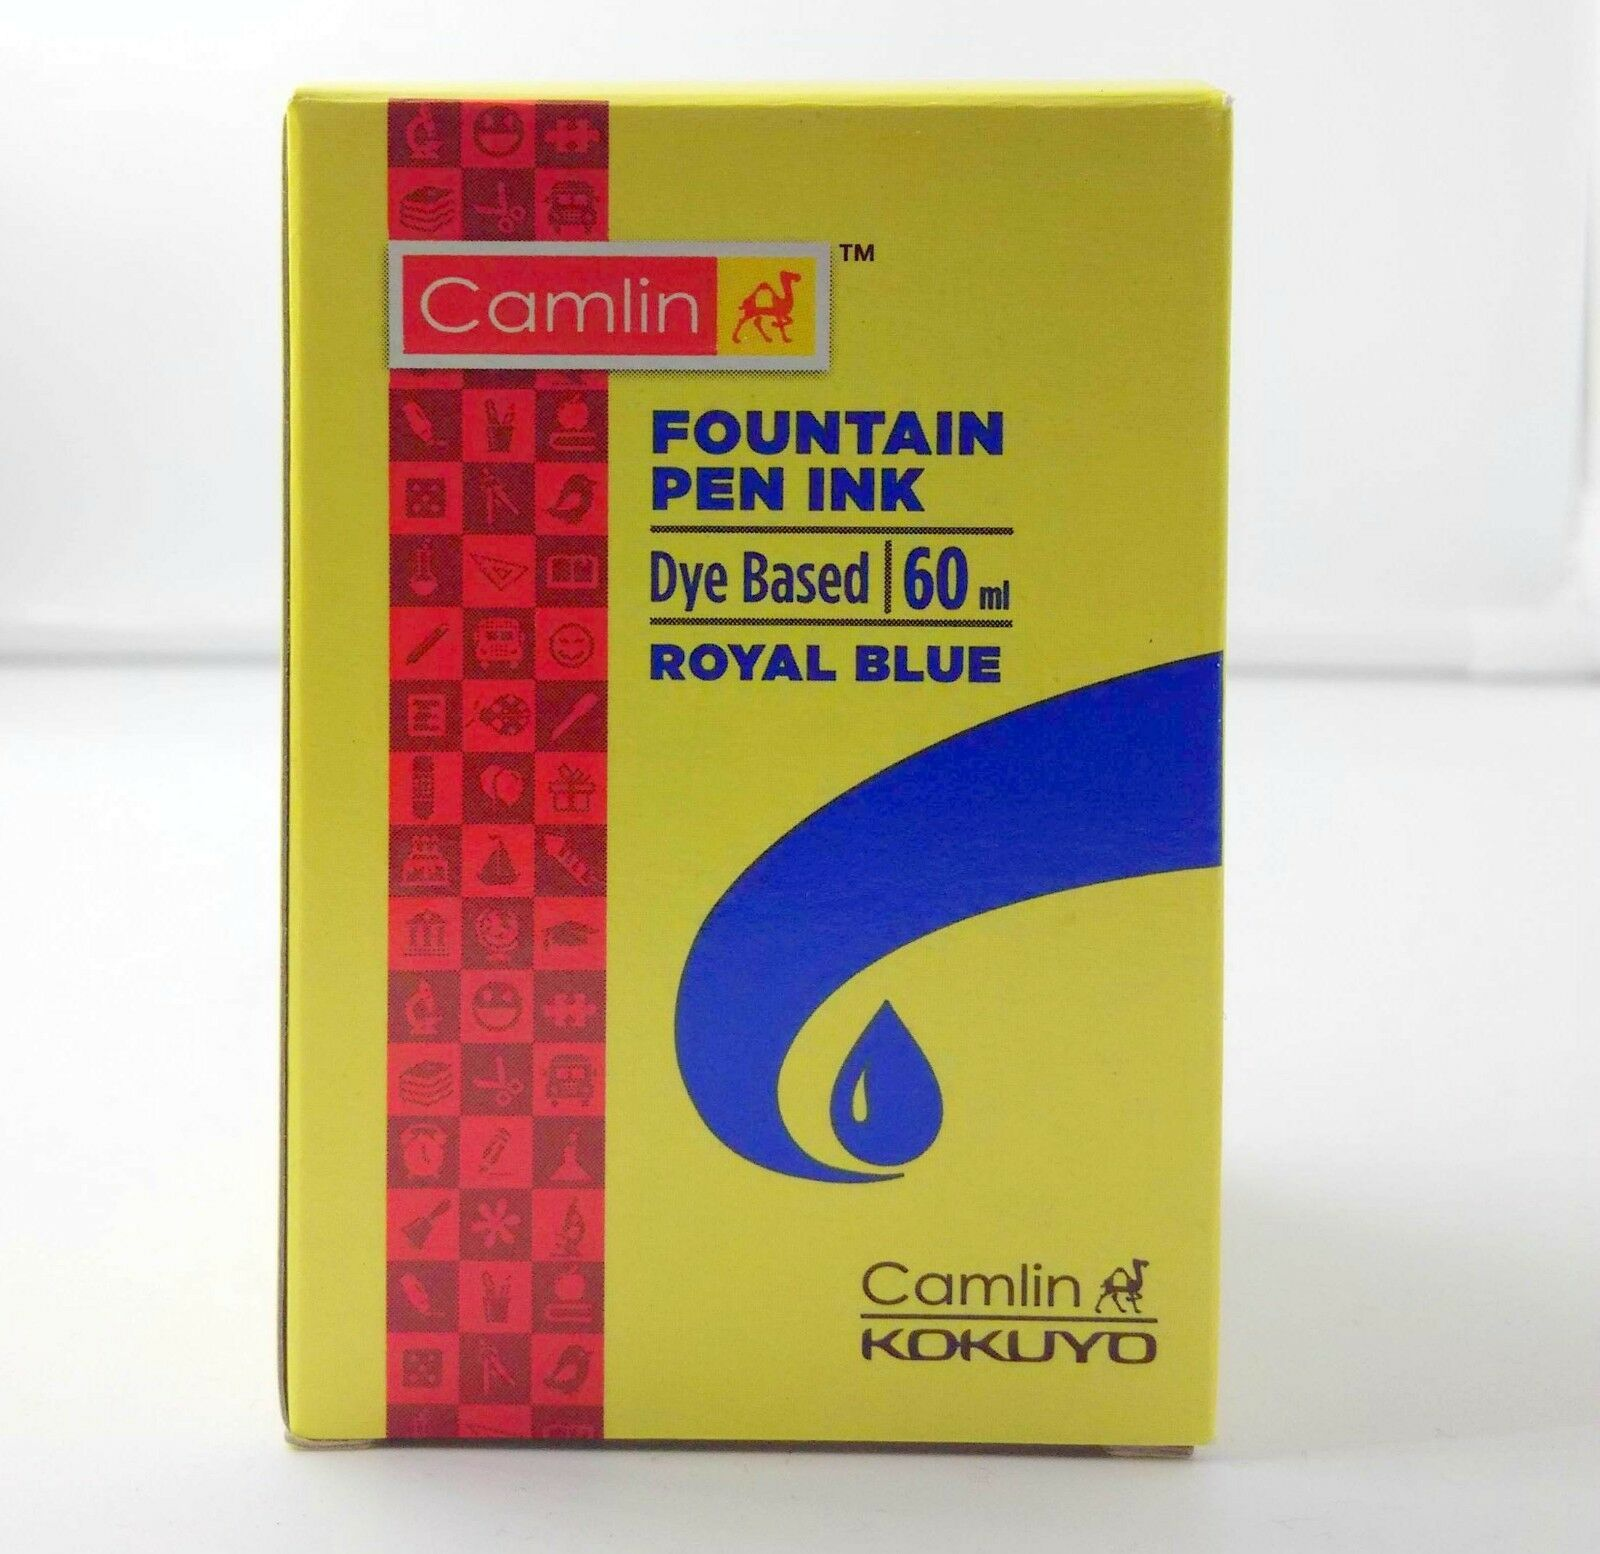 2 Camel Fountain Pen Ink ROYAL BLUE Bottles 60 ml 2 oz Camlin 2 qty  New Sealed